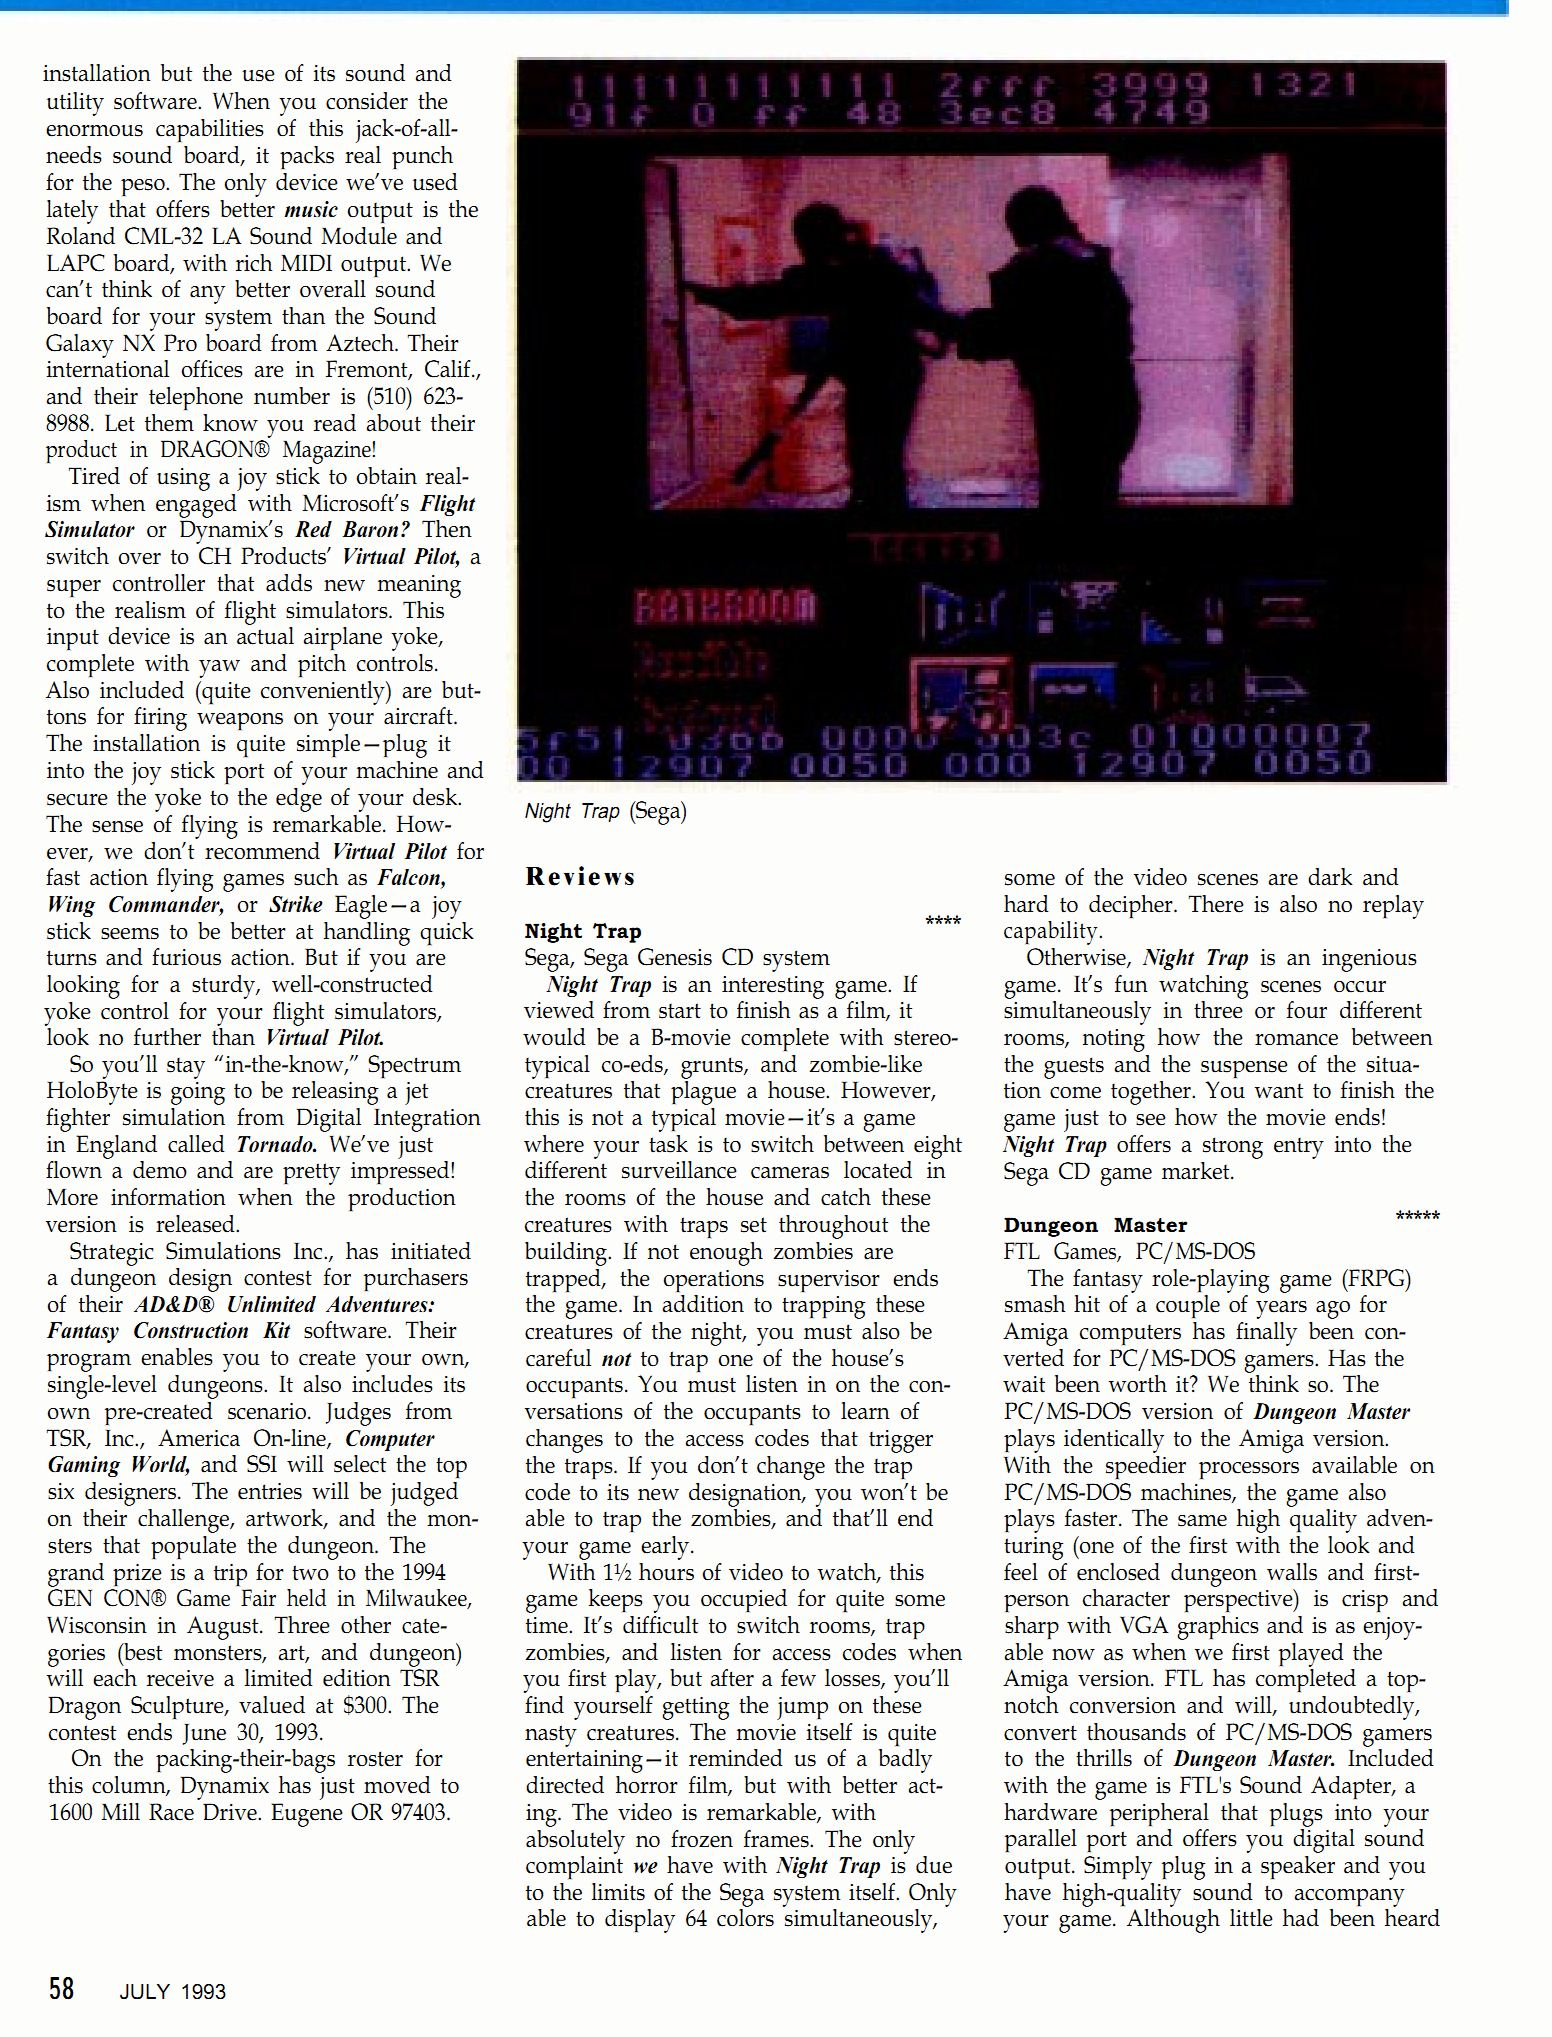 Dungeon Master for PC Review published in British-American magazine 'Dragon Magazine', Issue #195 Vol XVIII No 2 July 1993, Page 58